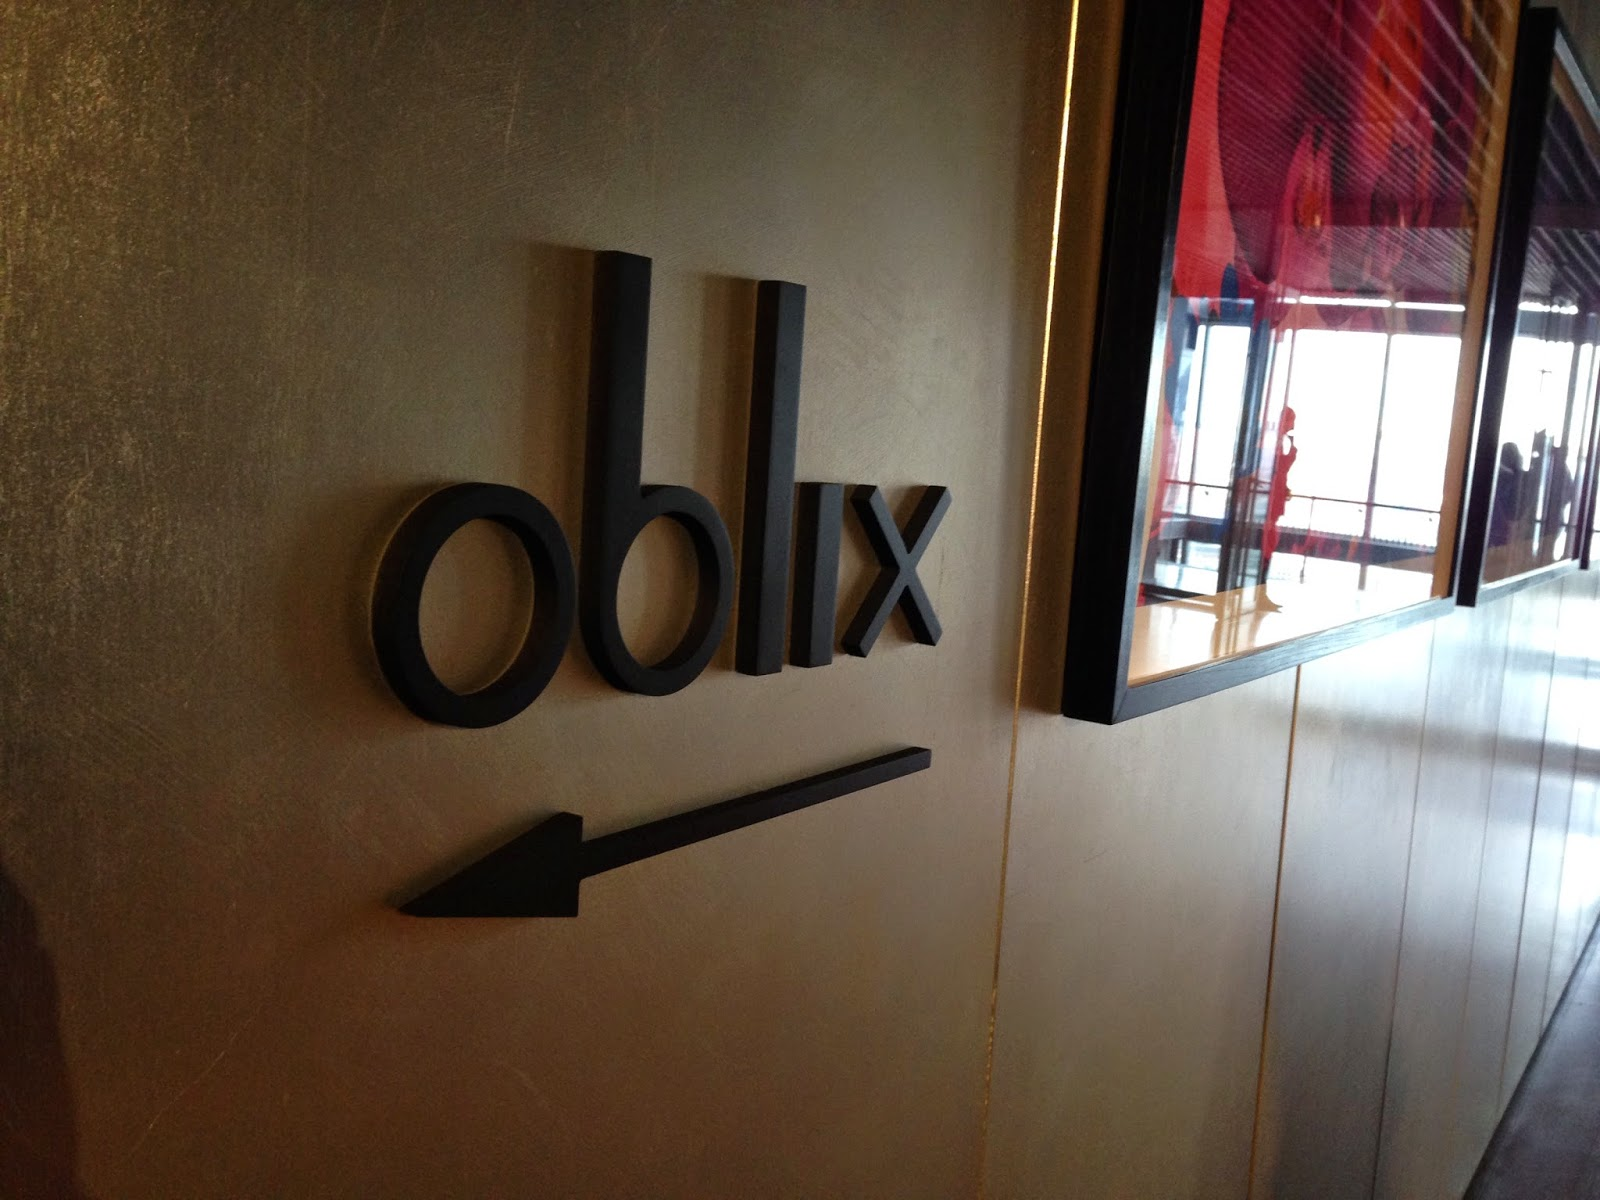 Lunch with a view at Oblix